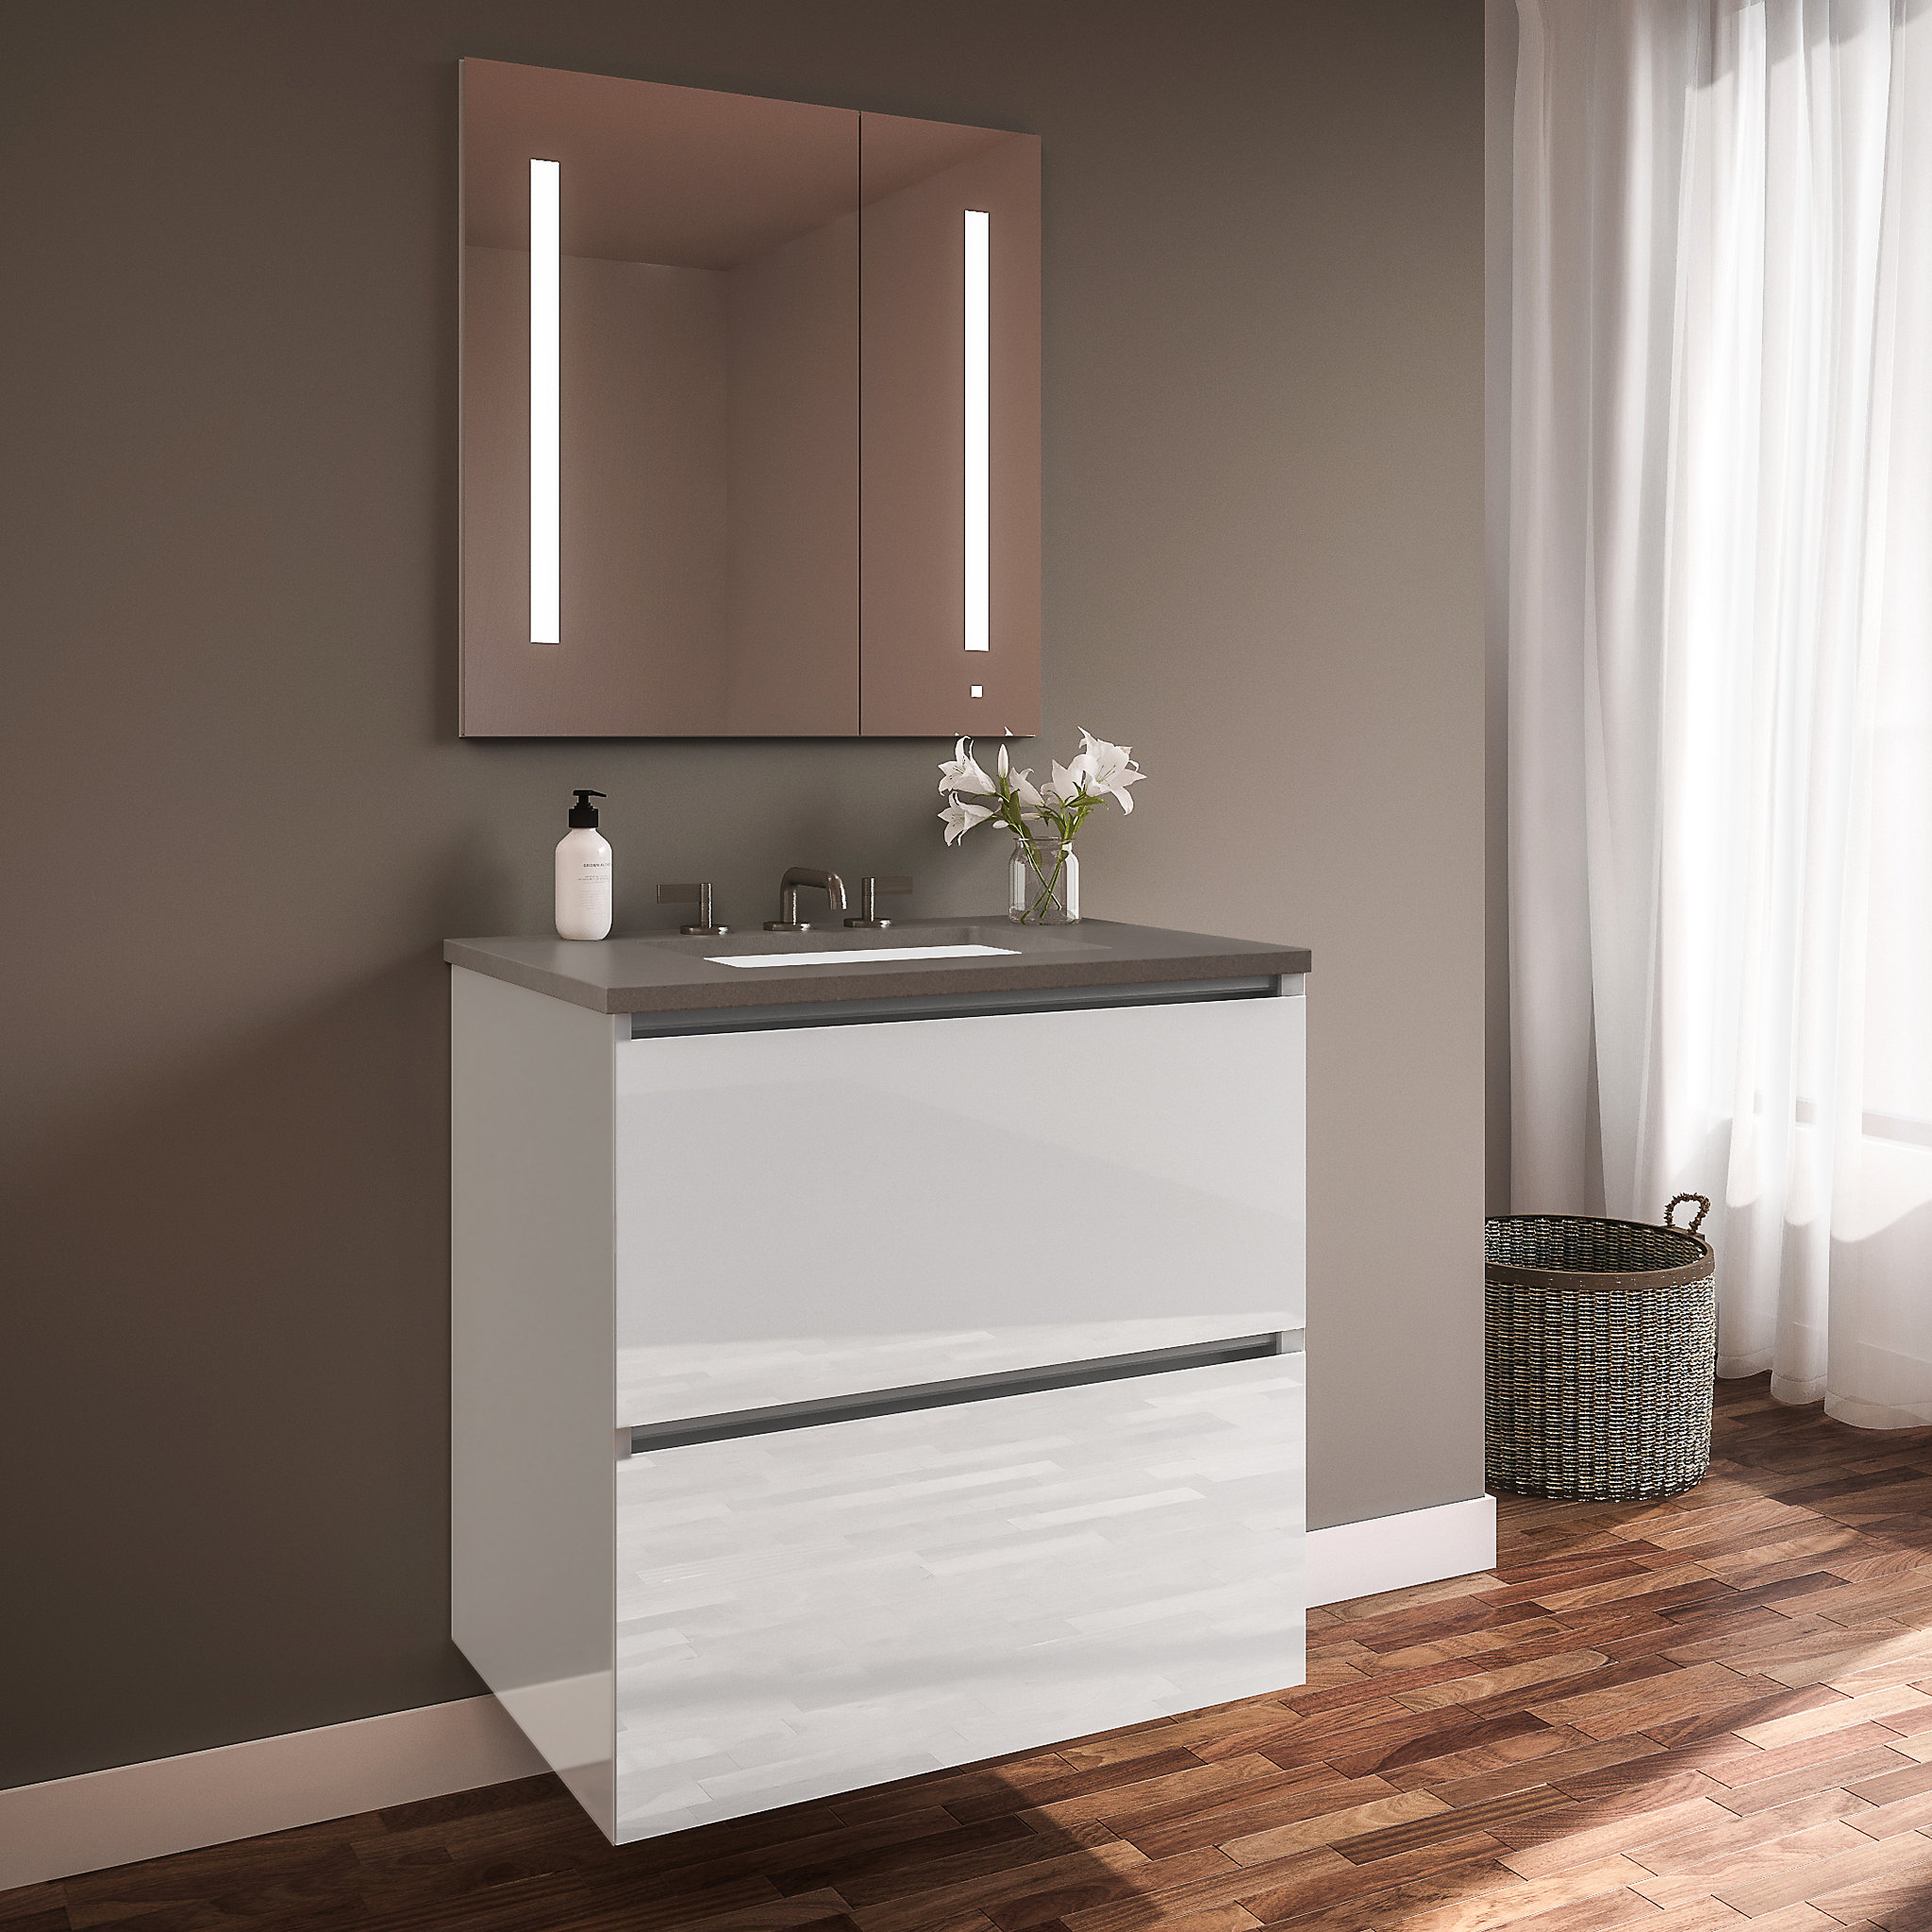 "Robern 30219100NB00002 Curated Cartesian Vanity, 30"" x 15"" x 21"", Two Drawer, White Glass, Plumbing Drawer, Full Drawer, Enginee"